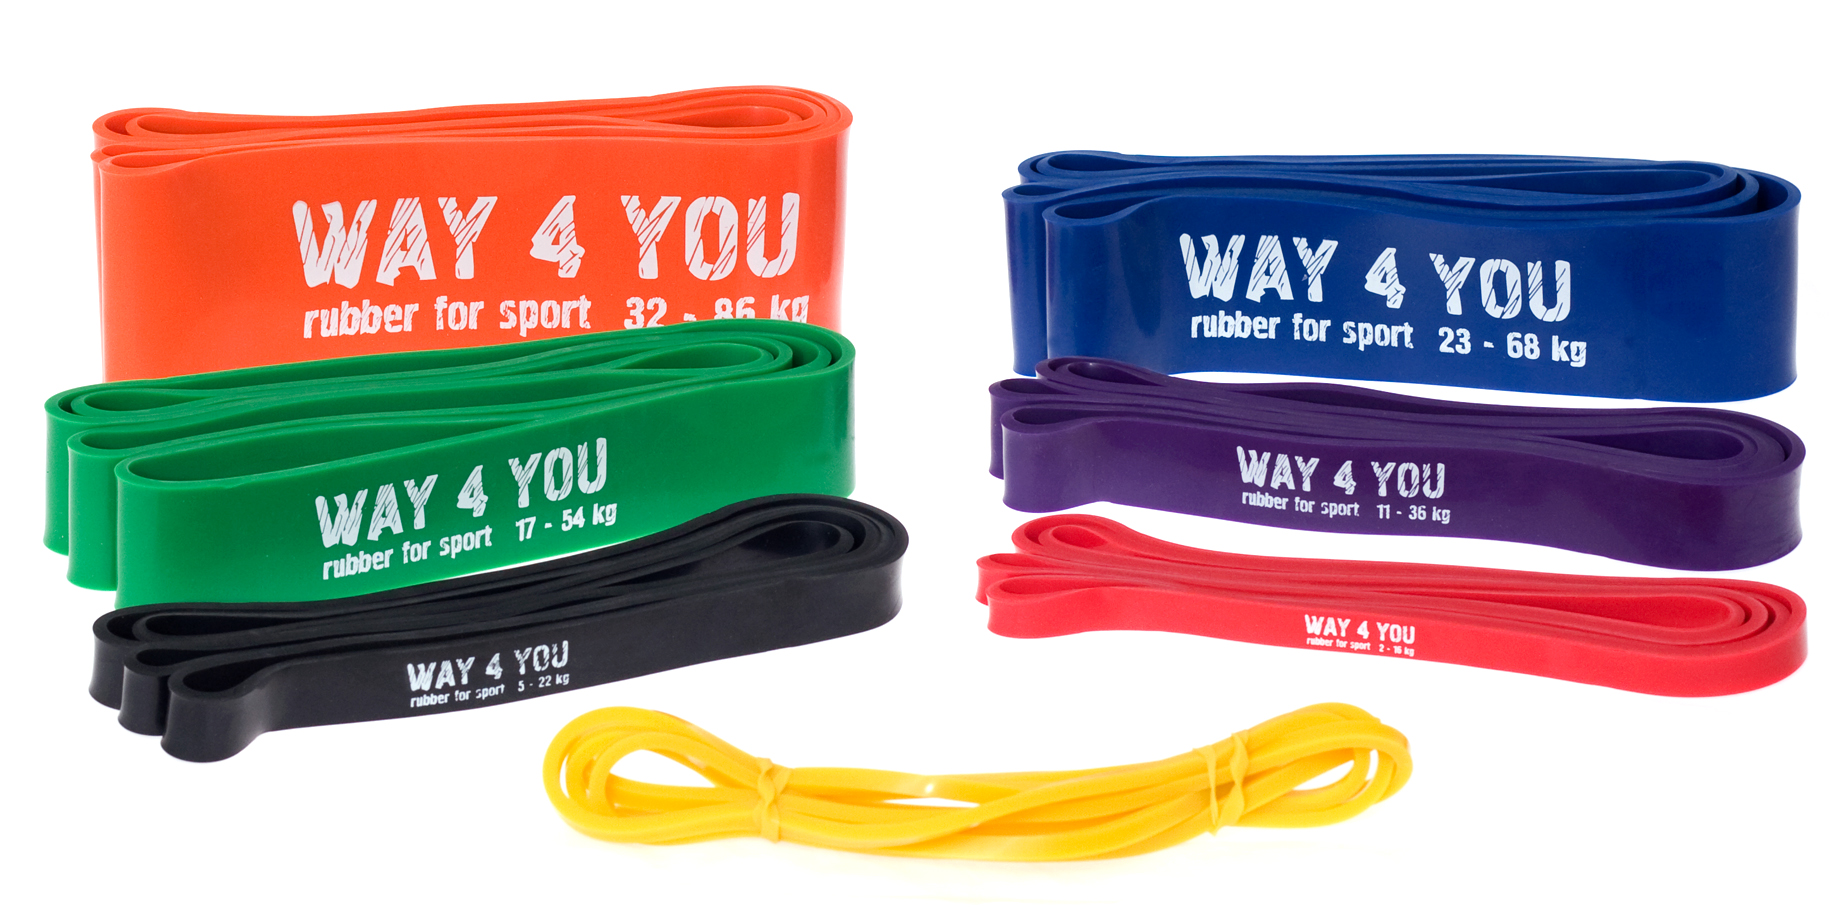 https://way4you.com.ua/images/upload/Way4you_rubber_band2.jpg